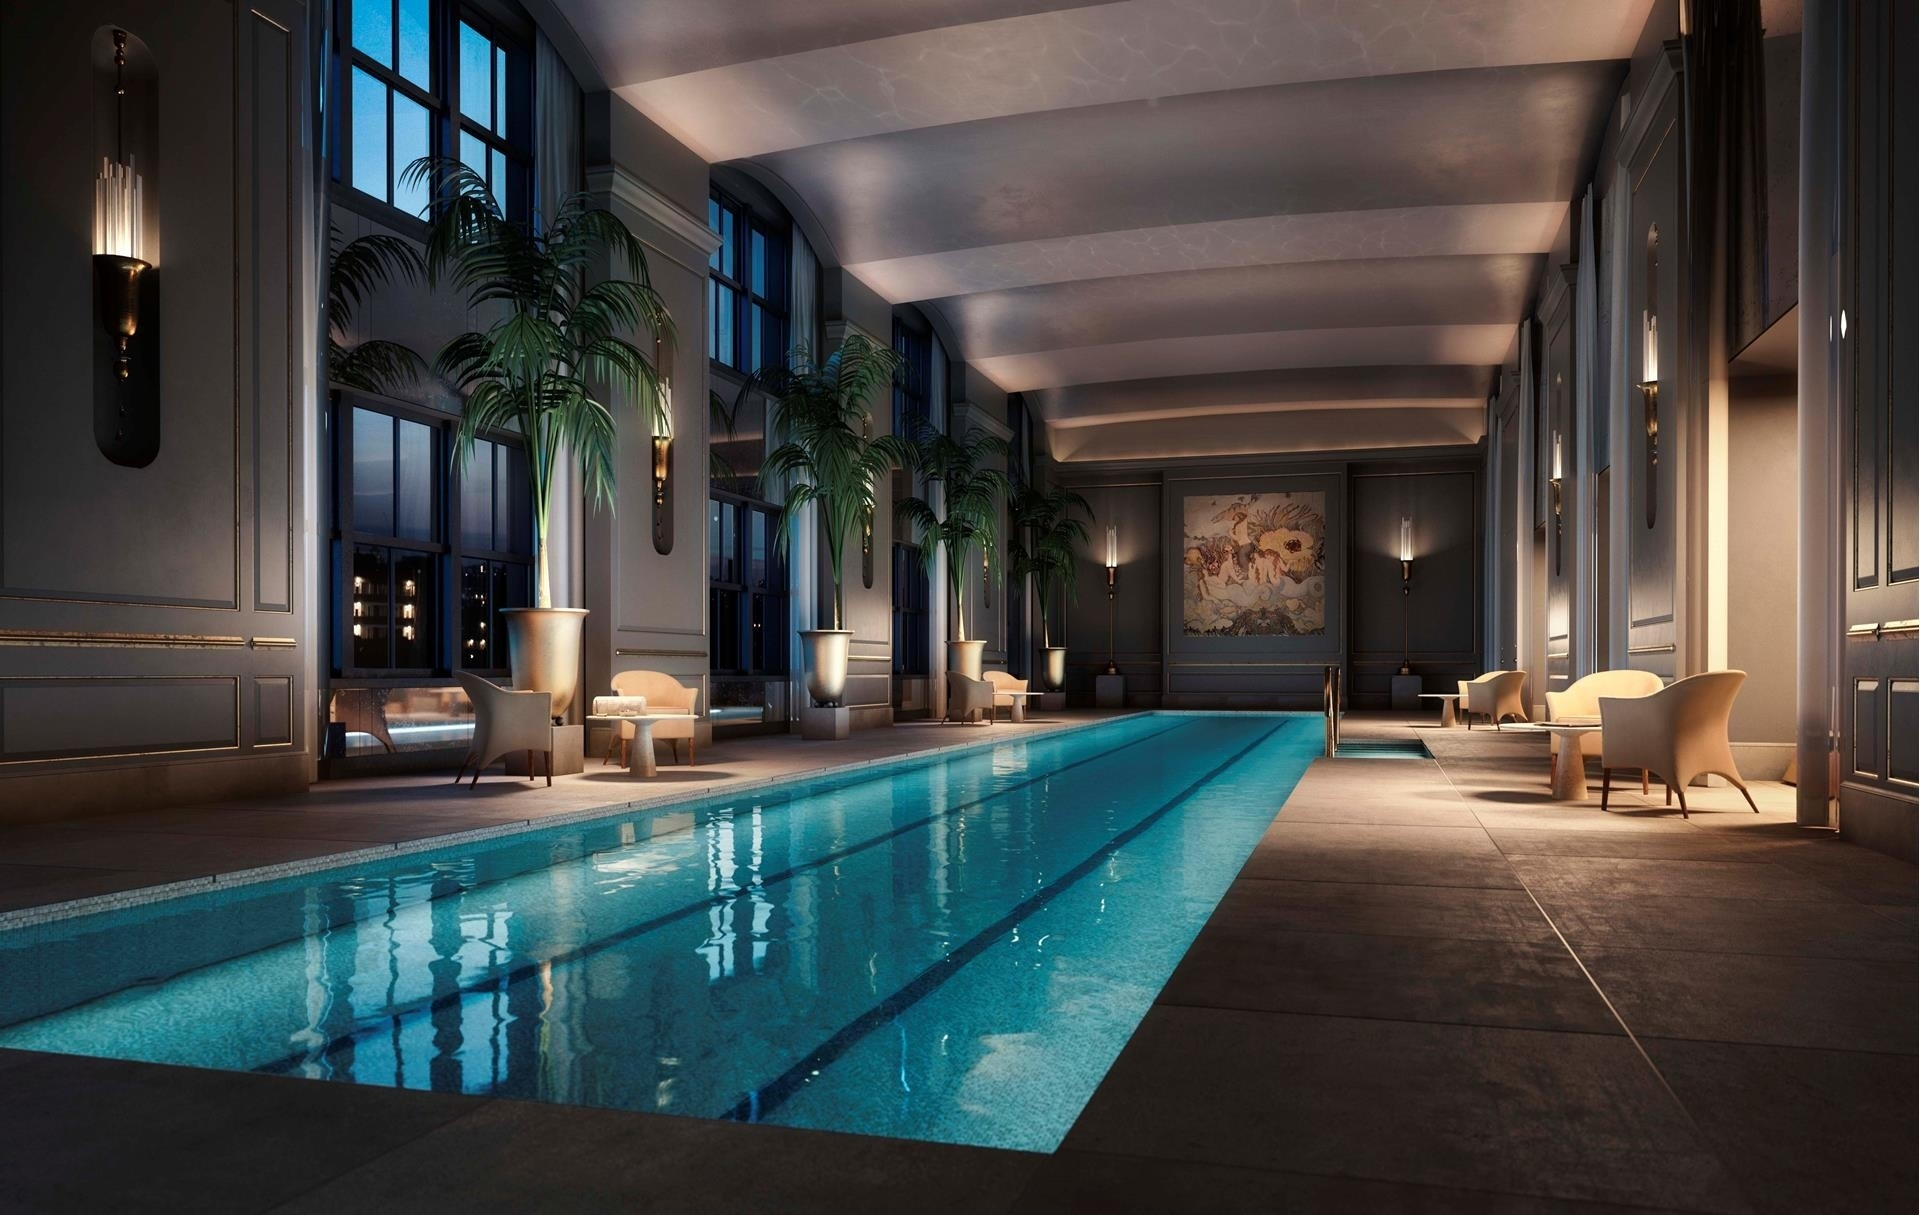 13. Condominiums for Sale at 111 West 57th St, 38 Midtown West, New York, NY 10019